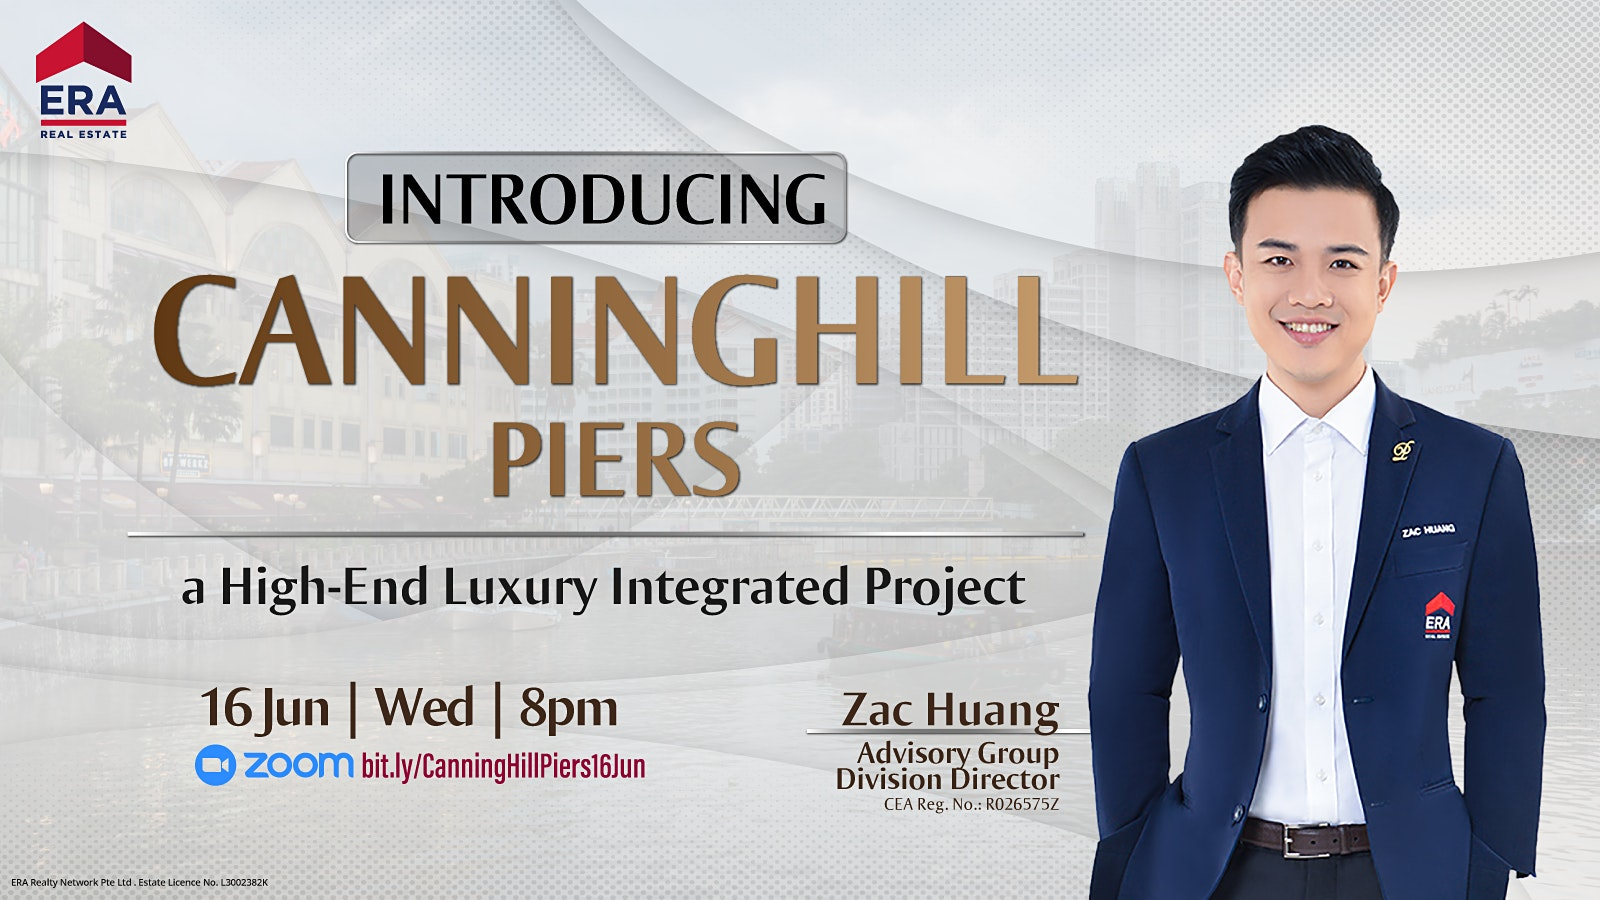 Introducing CanningHill Piers, a High-End Luxury Integrated Project